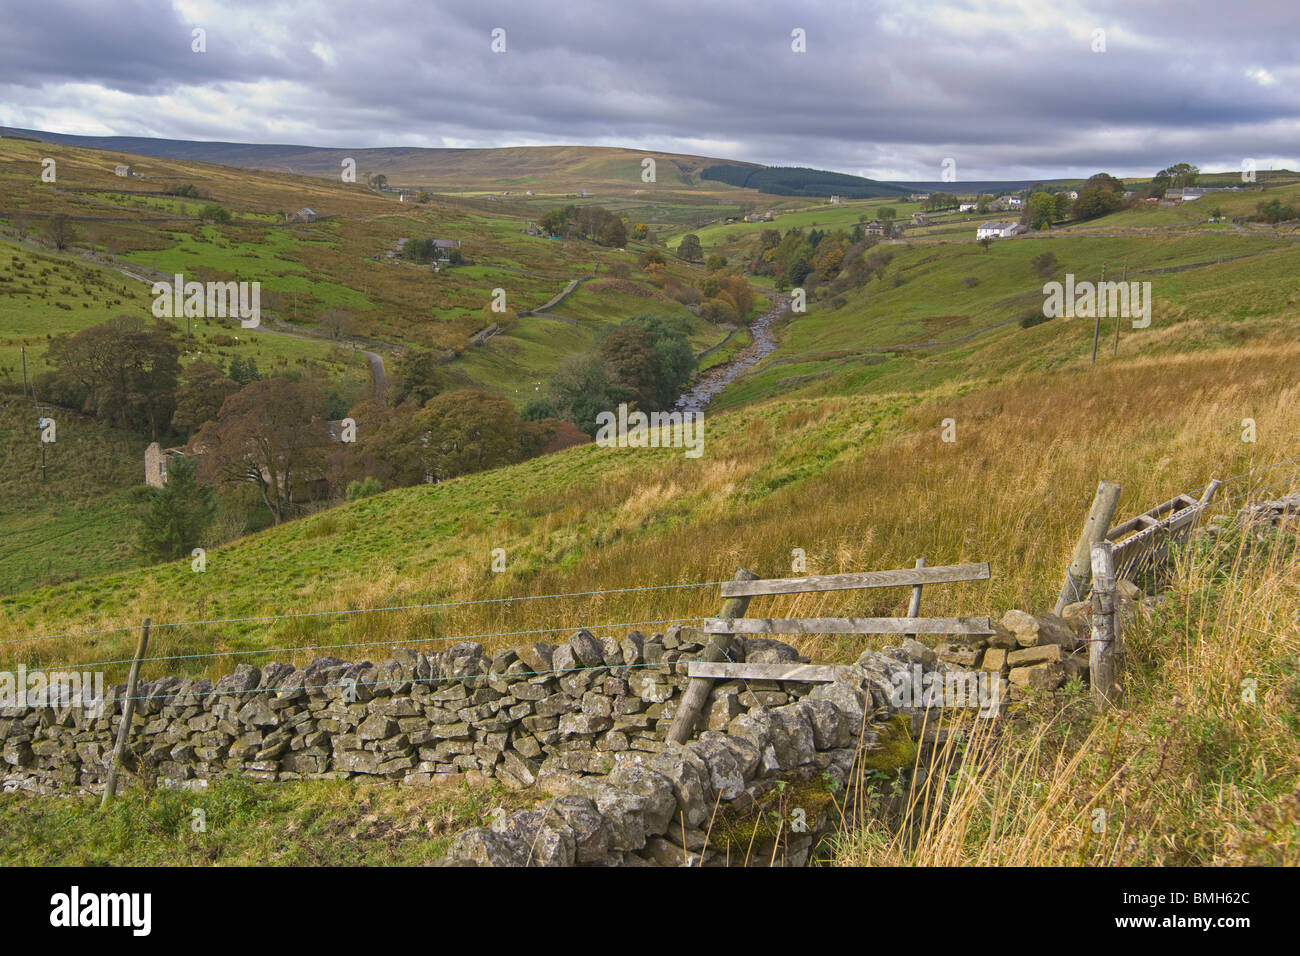 Upper Teesdale, Alston, Northern Penines, England, October, 2009 - Stock Image